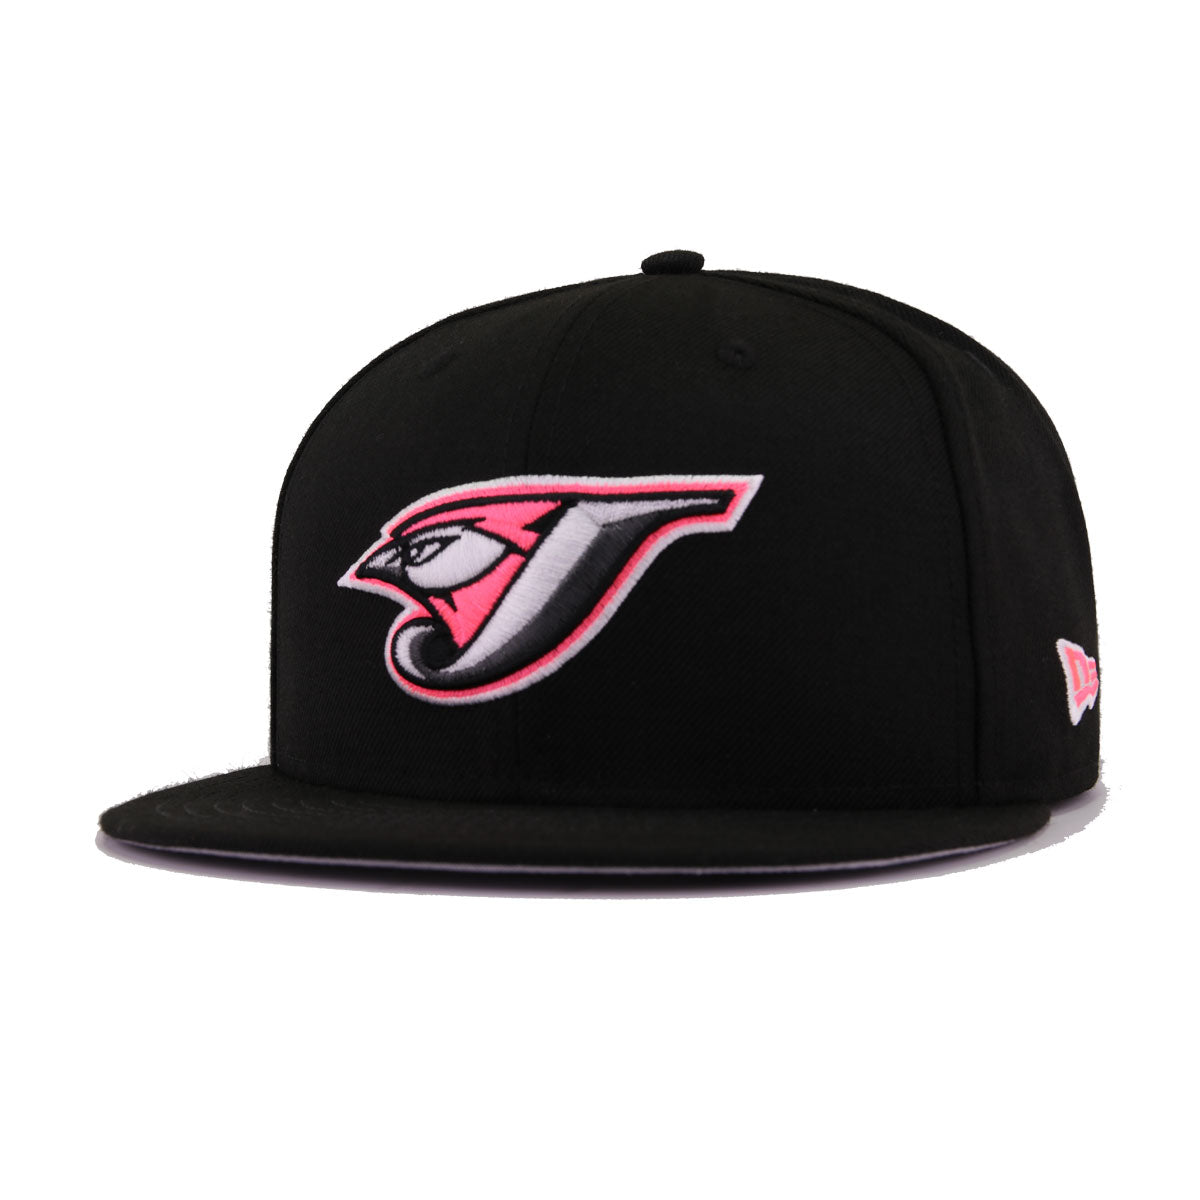 defef24739e Toronto Blue Jays Black Infrared Metallic Silver New Era 9Fifty Snapback